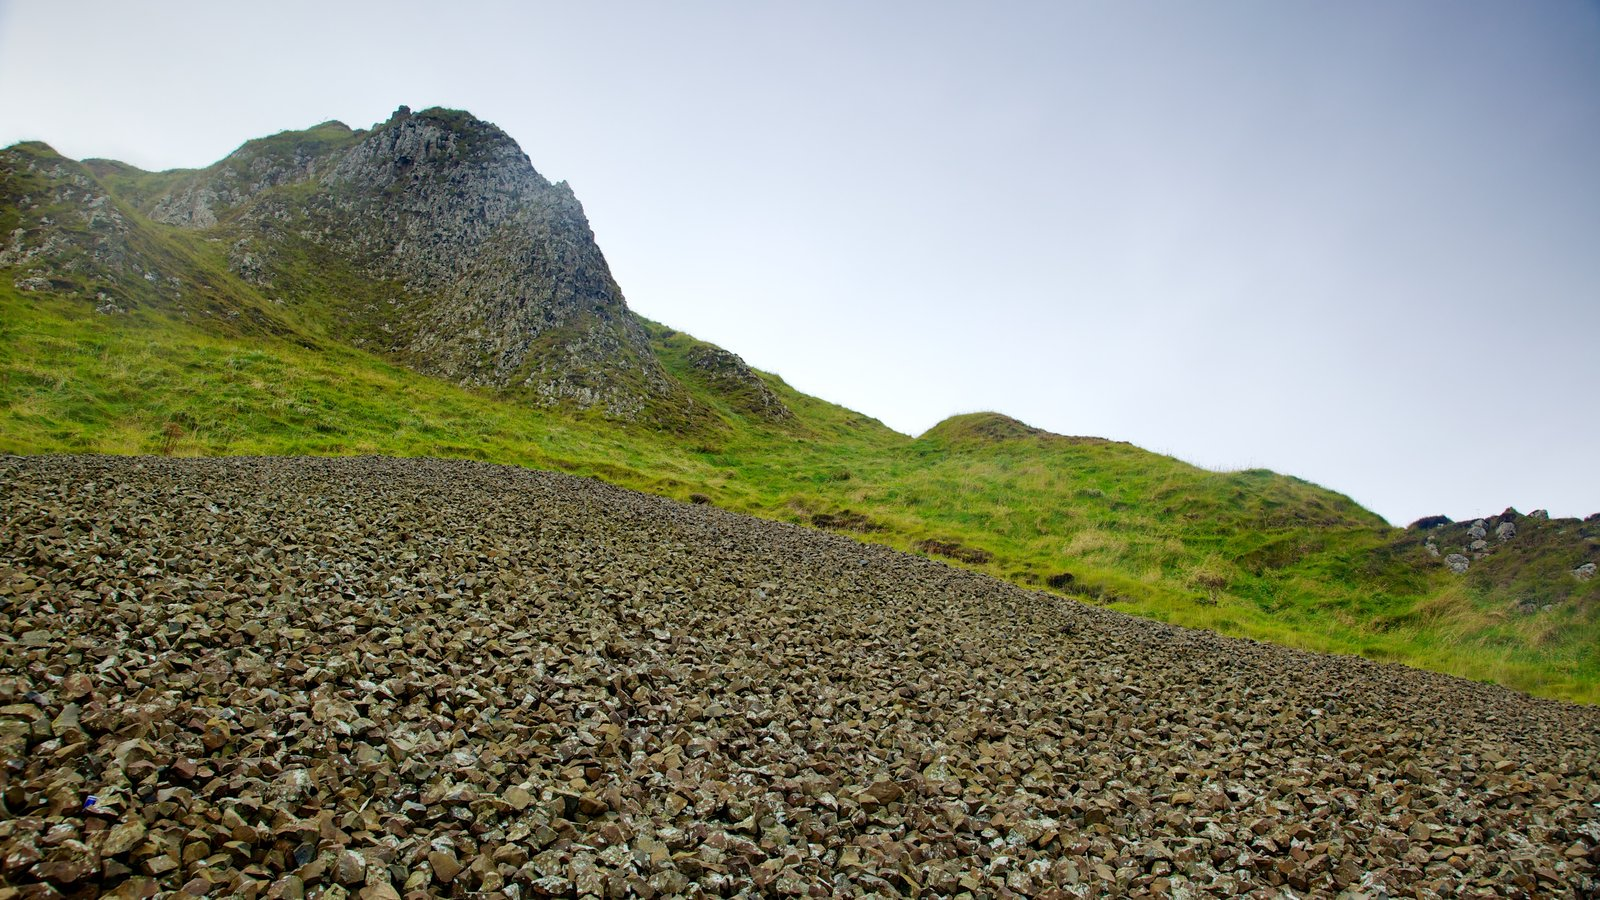 Giant\'s Causeway which includes mountains and tranquil scenes